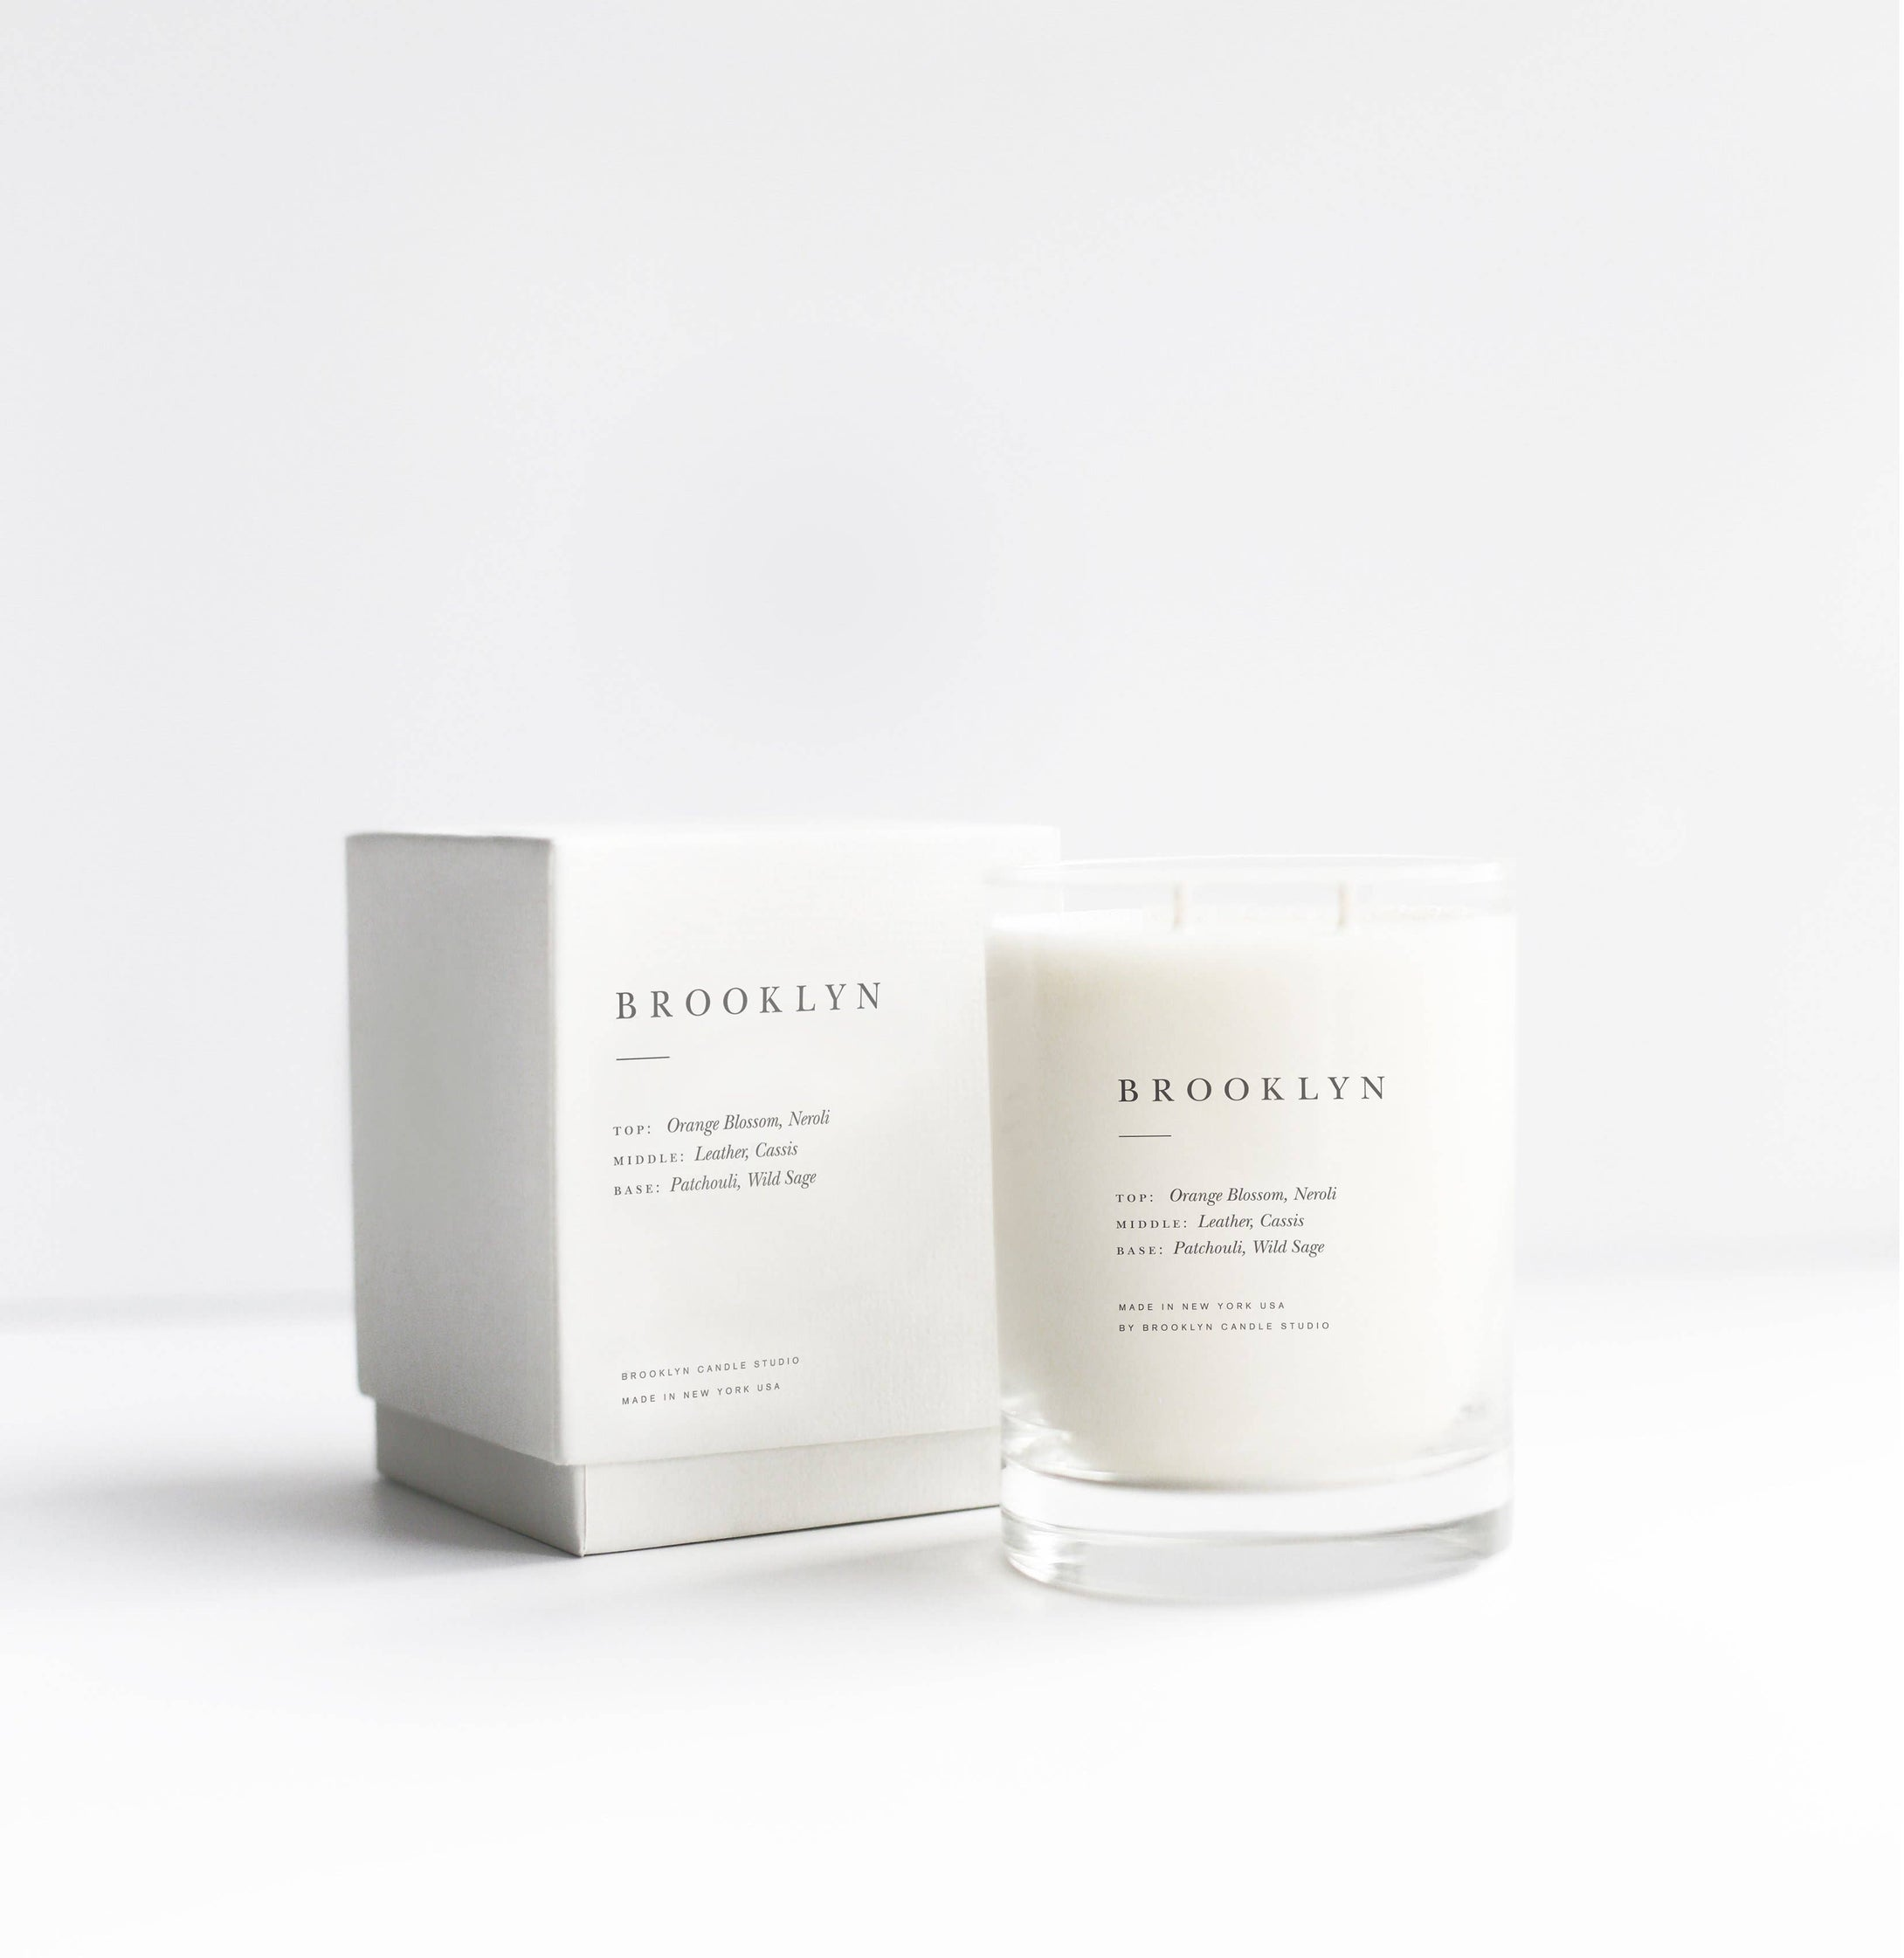 Brooklyn Escapist Candle | Brooklyn Candle Studio